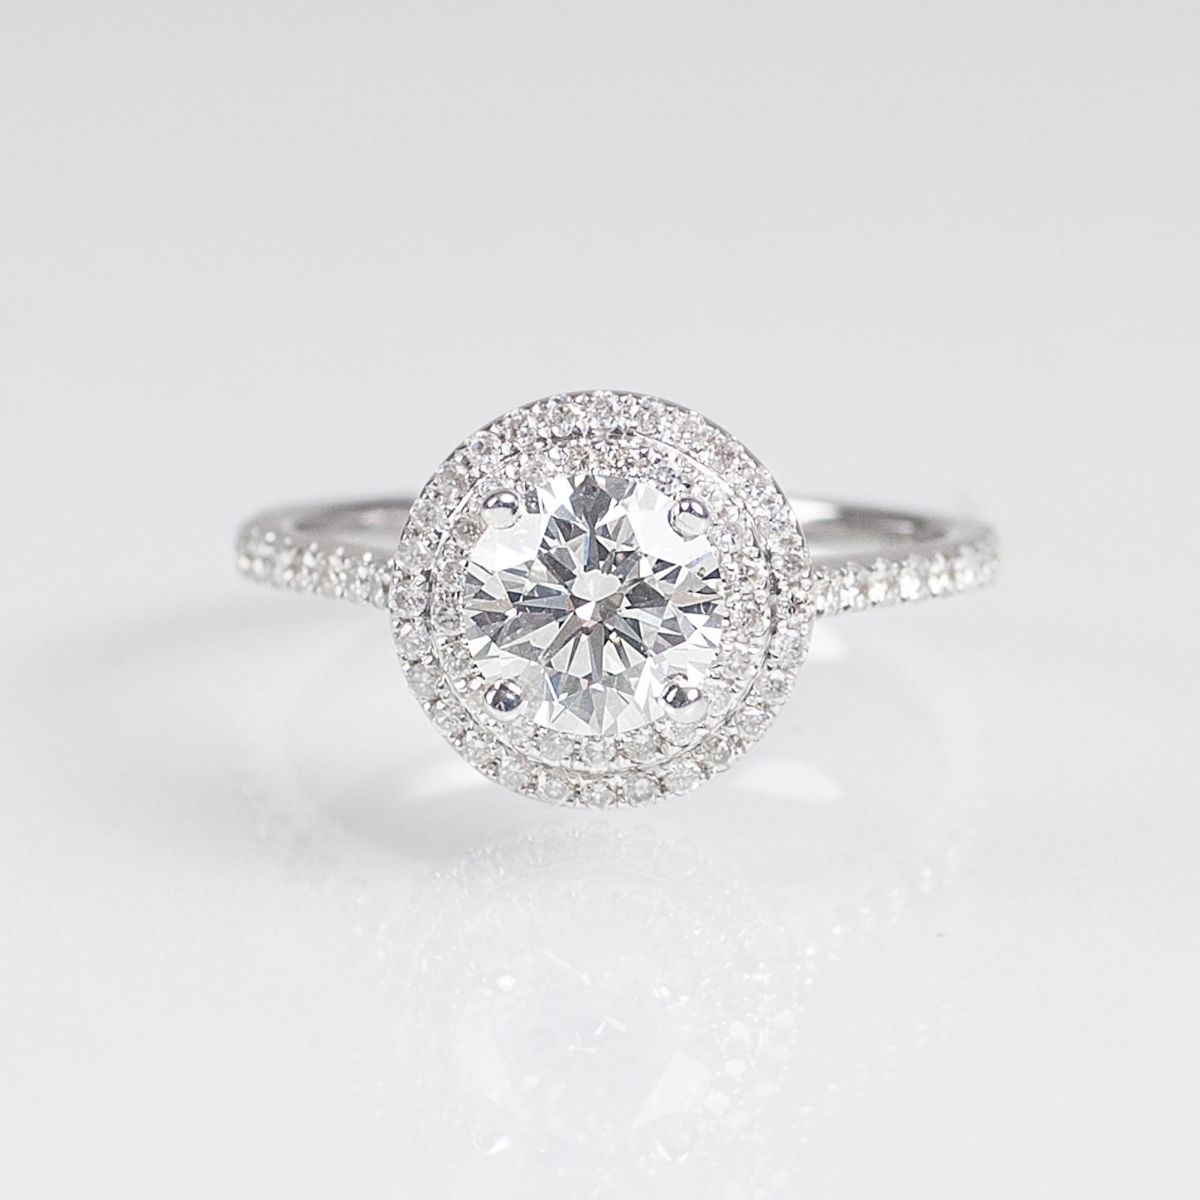 A Classical Solitaire Diamond Ring